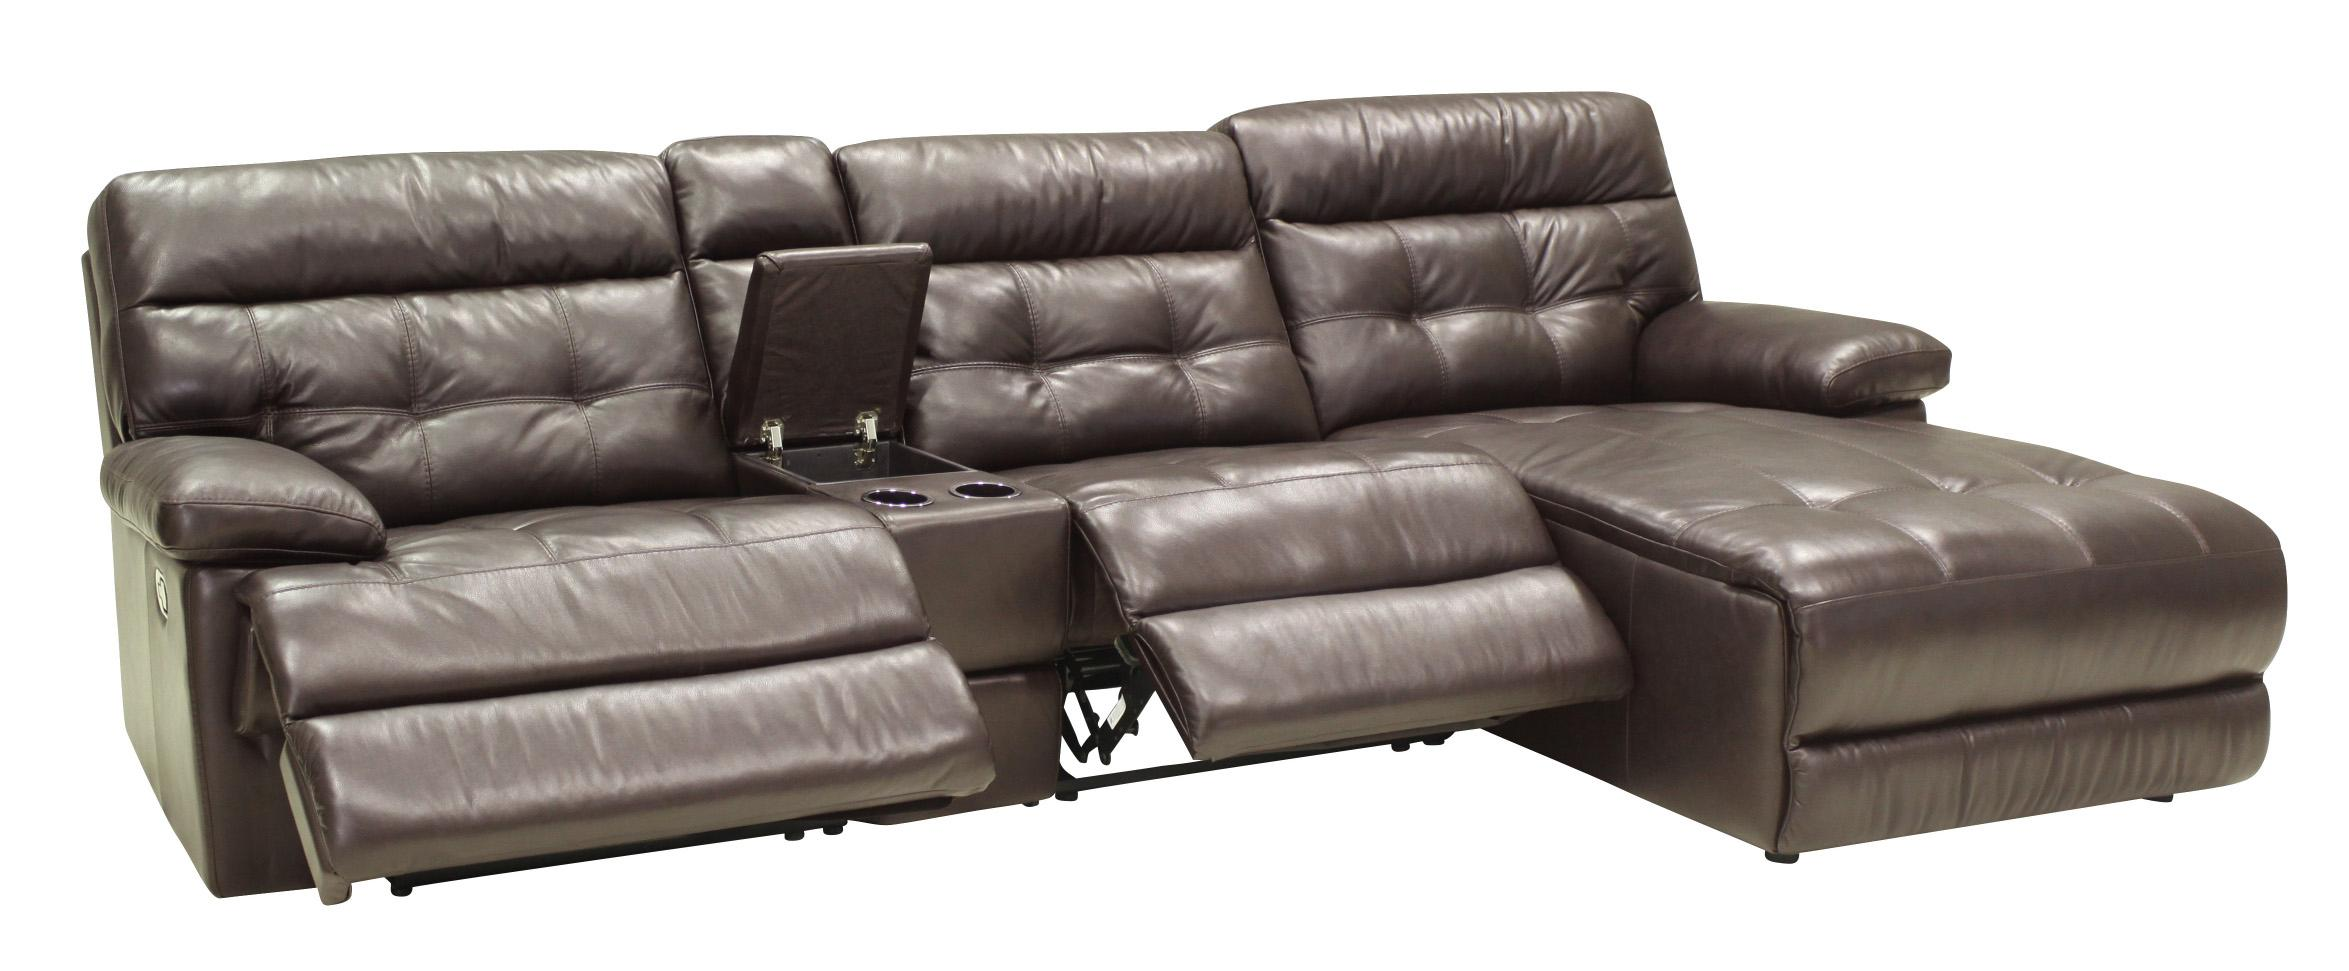 4 Pc Reclining Sectional w/ RAF Chaise